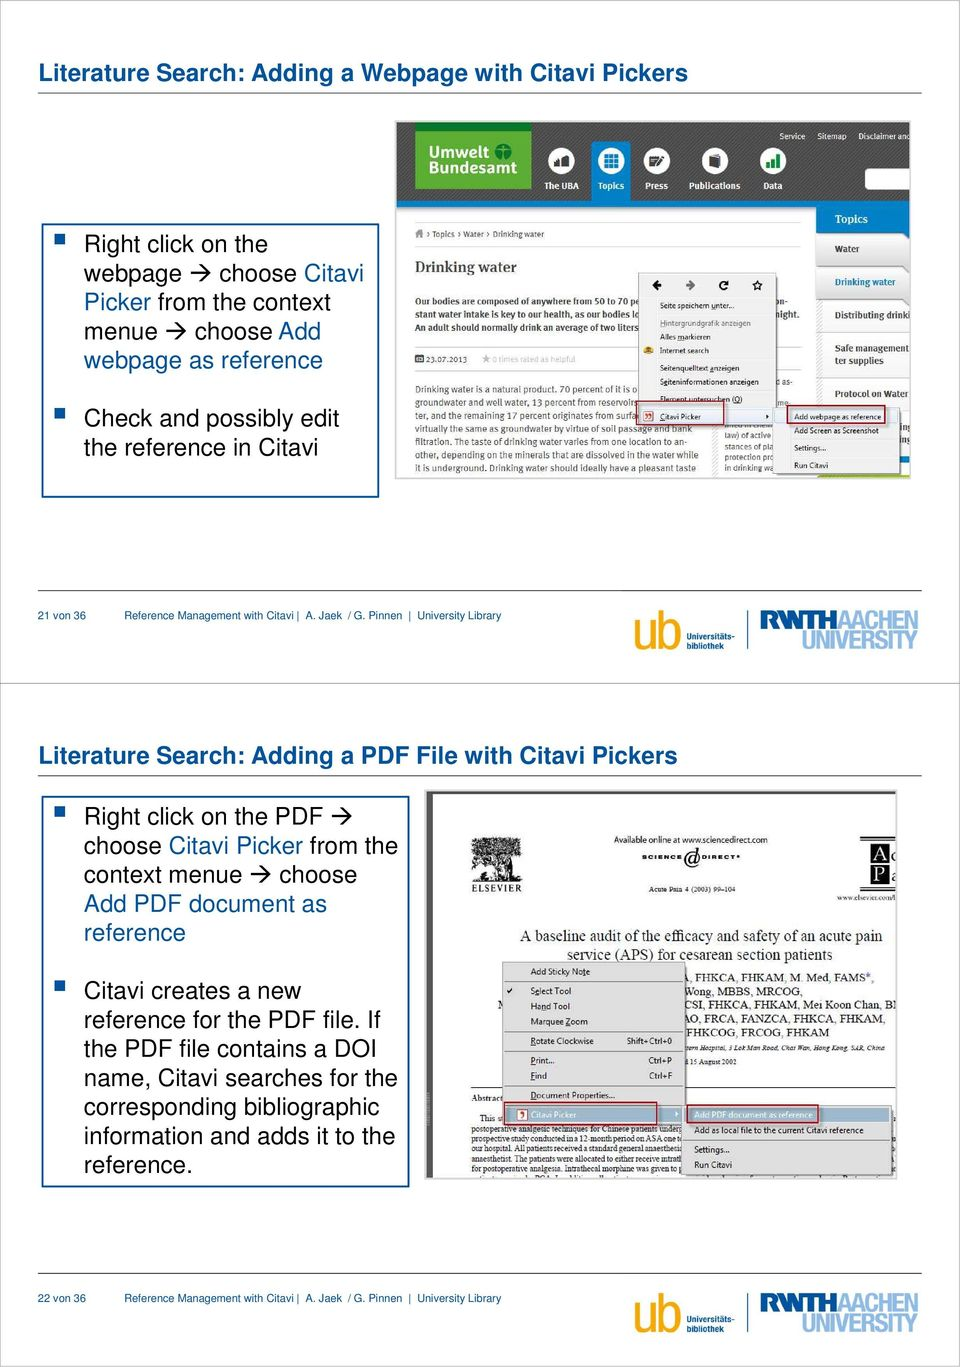 click on the PDF choose Citavi Picker from the context menue choose Add PDF document as reference Citavi creates a new reference for the PDF